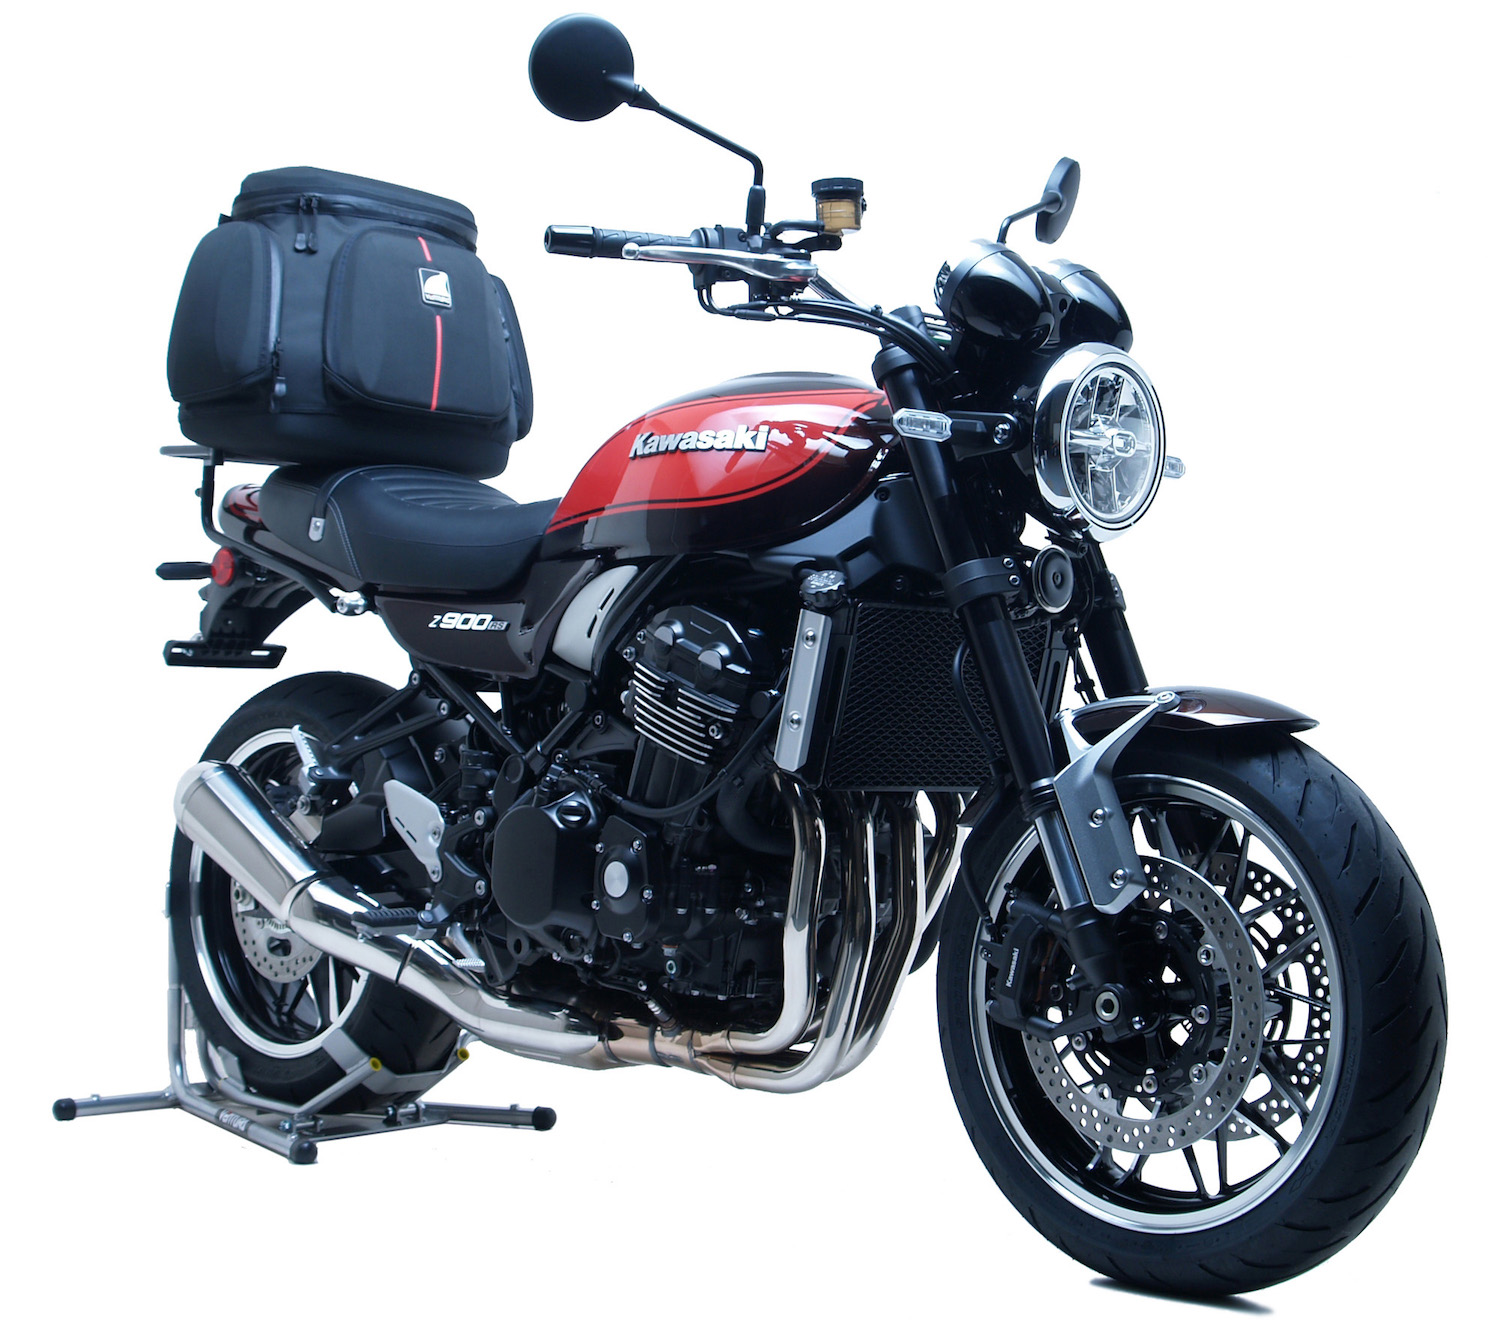 Ventura Bike Pack Z900 RS